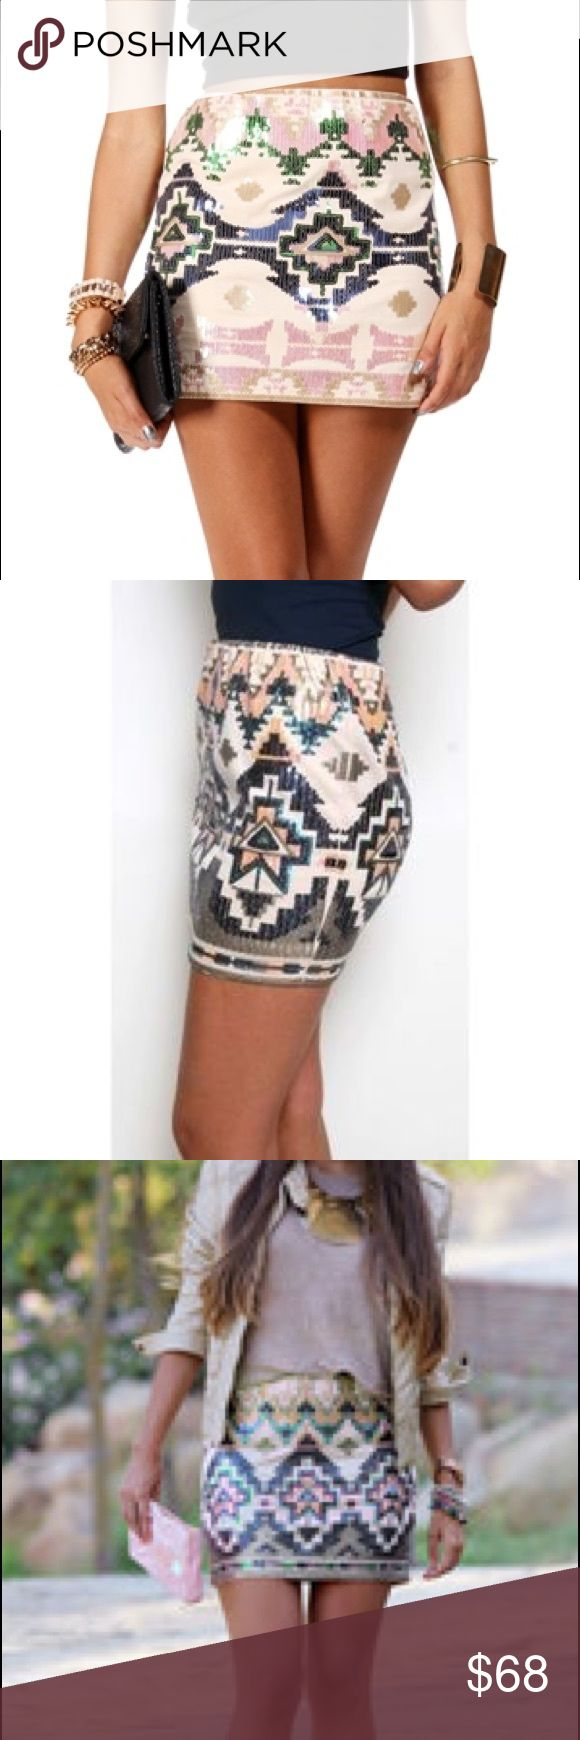 Sequin Aztec tribal mini skirt New without tags express sequin tribal print skirt. A spring/summer time must have!! Bought and never wore!!  Size Xs (I usually wear a 4/6) and this fit me. Has stretch Express Skirts Mini